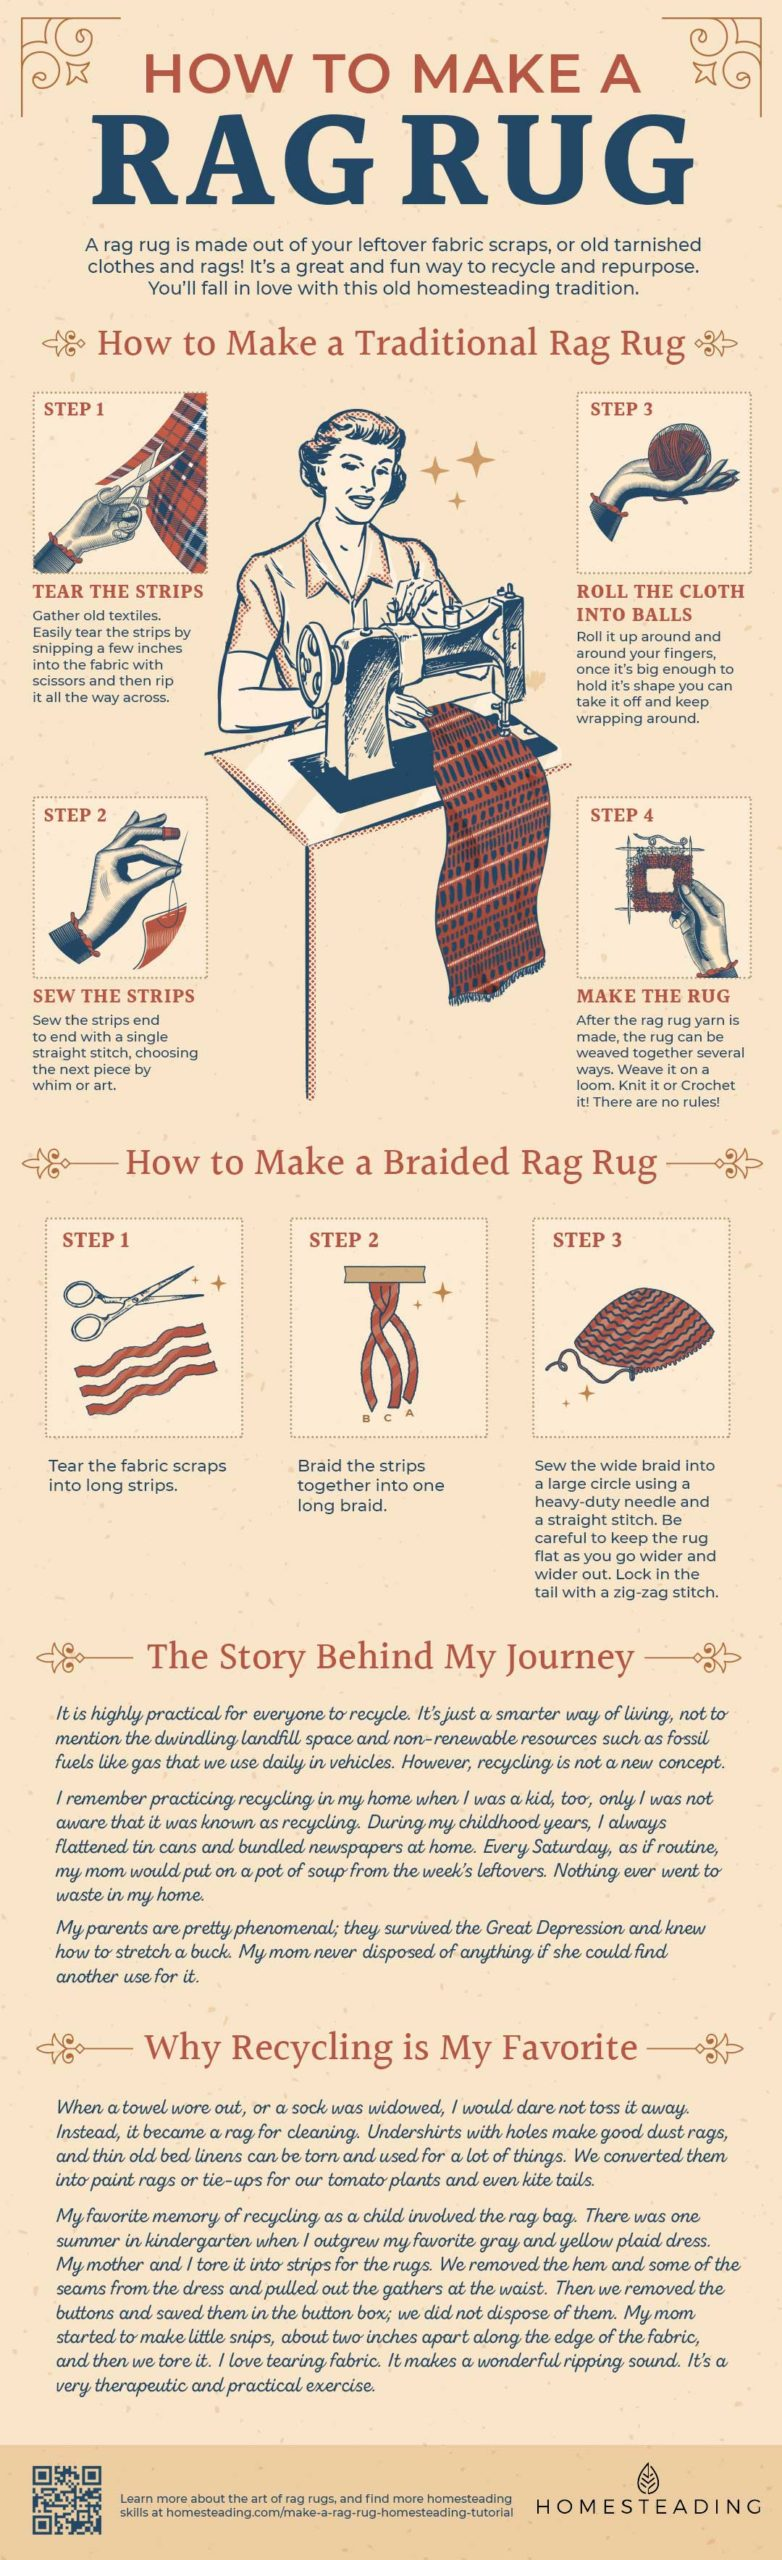 How To Make A Traditional Rag Rug [INFOGRAPHIC]